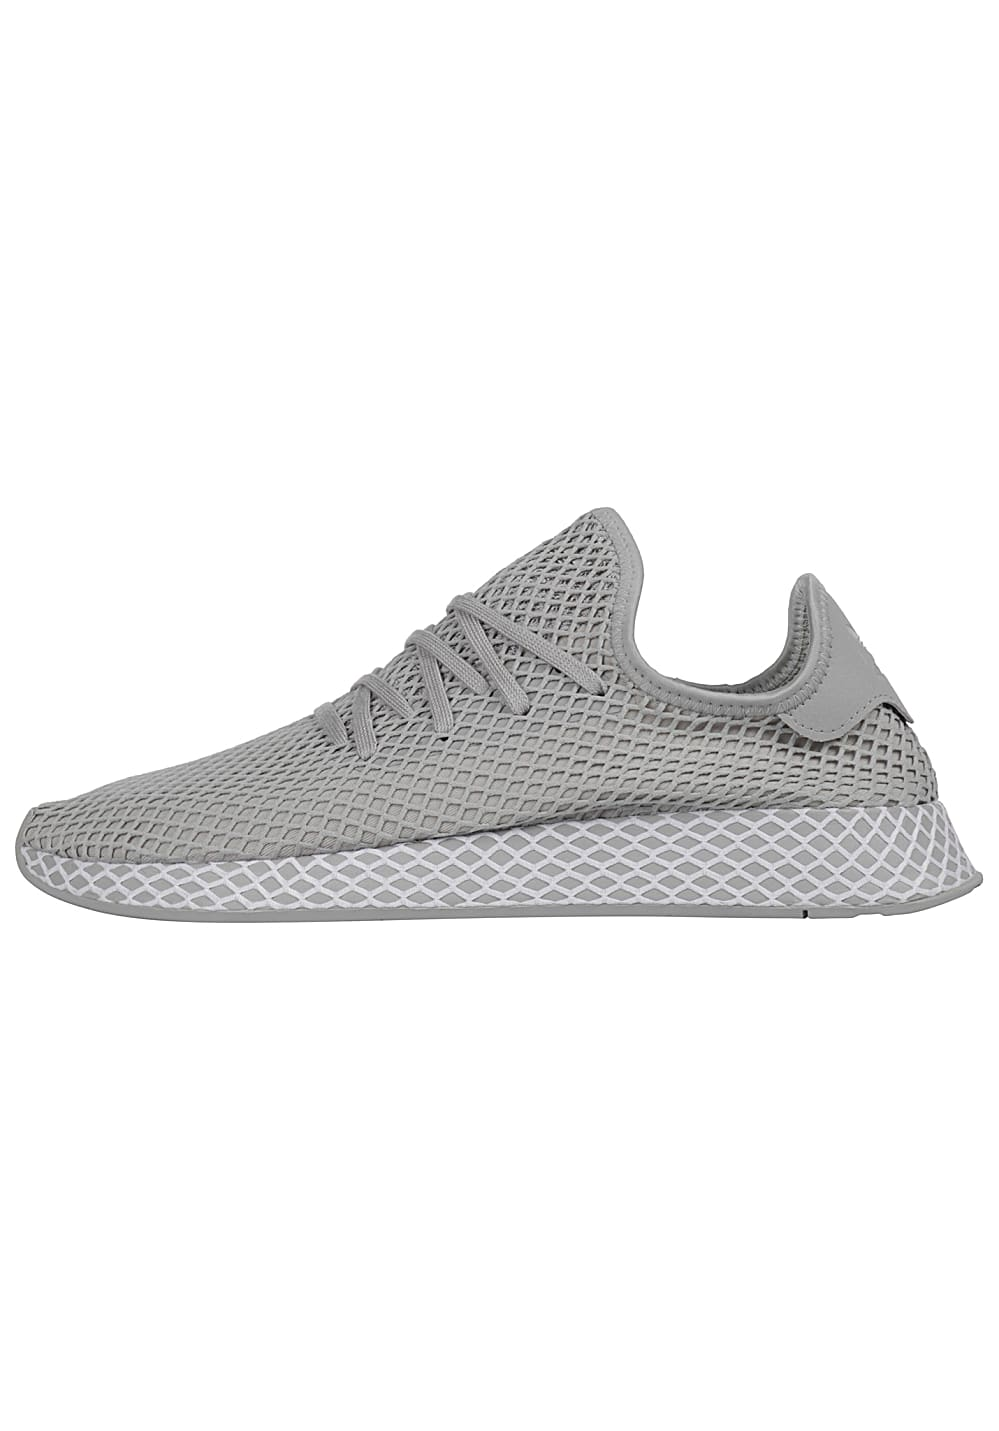 a few days away new lower prices official supplier ADIDAS ORIGINALS Deerupt Runner - Sneakers for Men - Grey